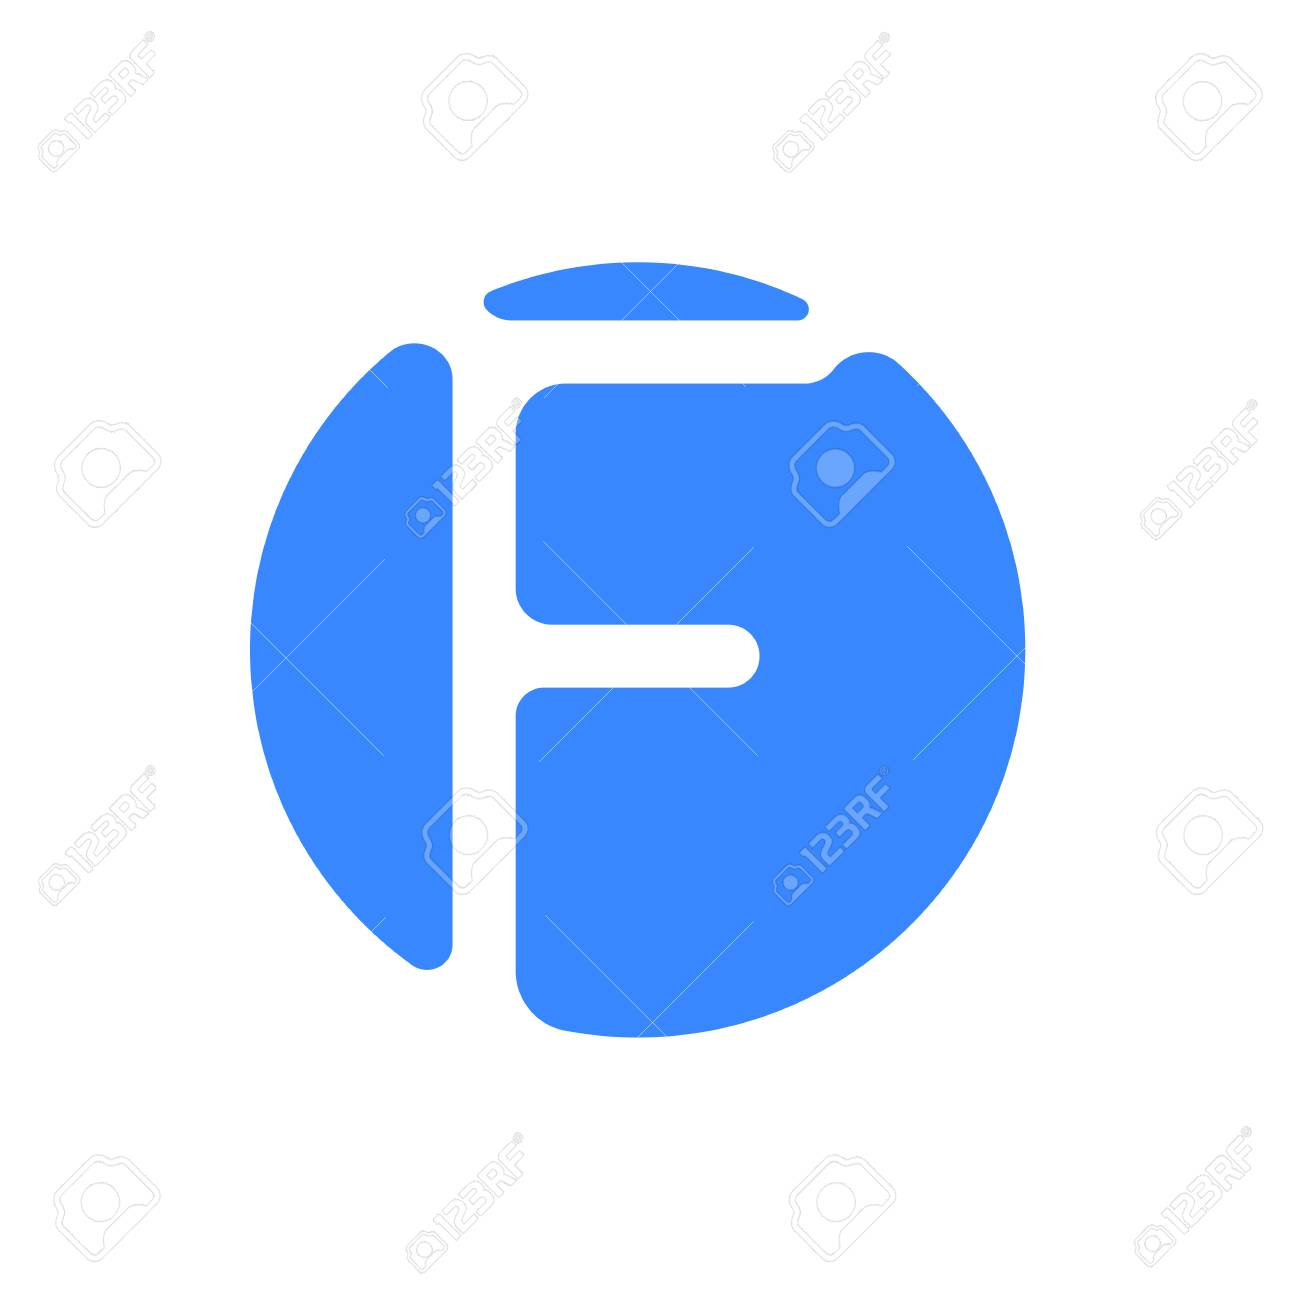 Letter logo modern abstract blue icon of letter F for font logo Stock Vector  - 98717901 aa5f236436e0